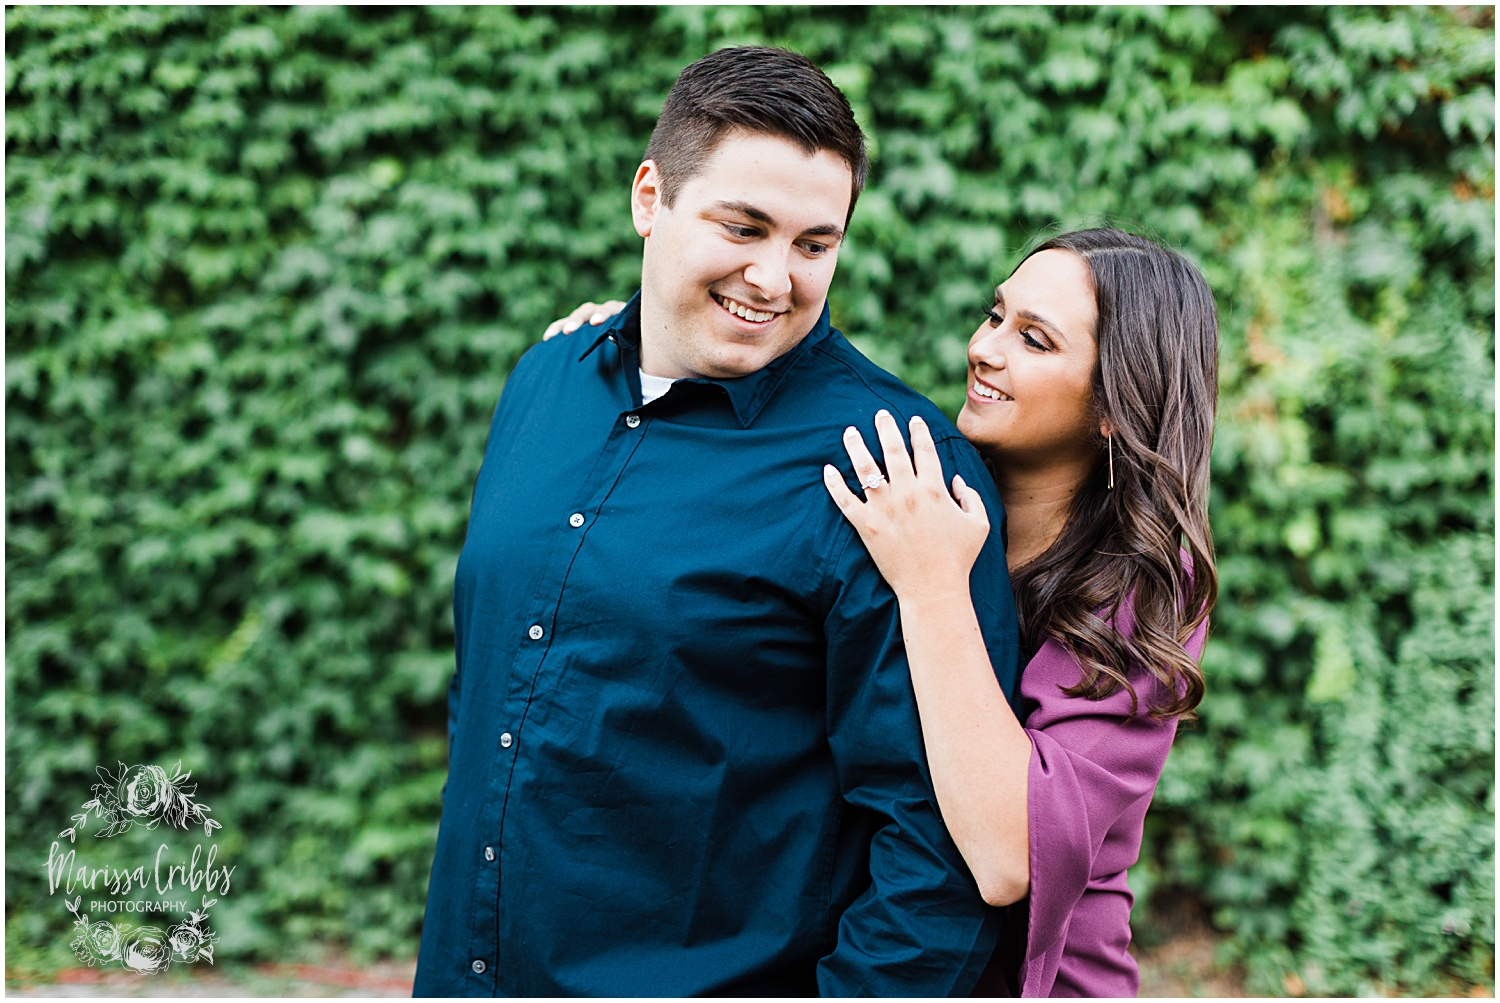 MORGAN & KEVIN ENGAGEMENT BLOG | MARISSA CRIBBS PHOTOGRAPHY_8285.jpg